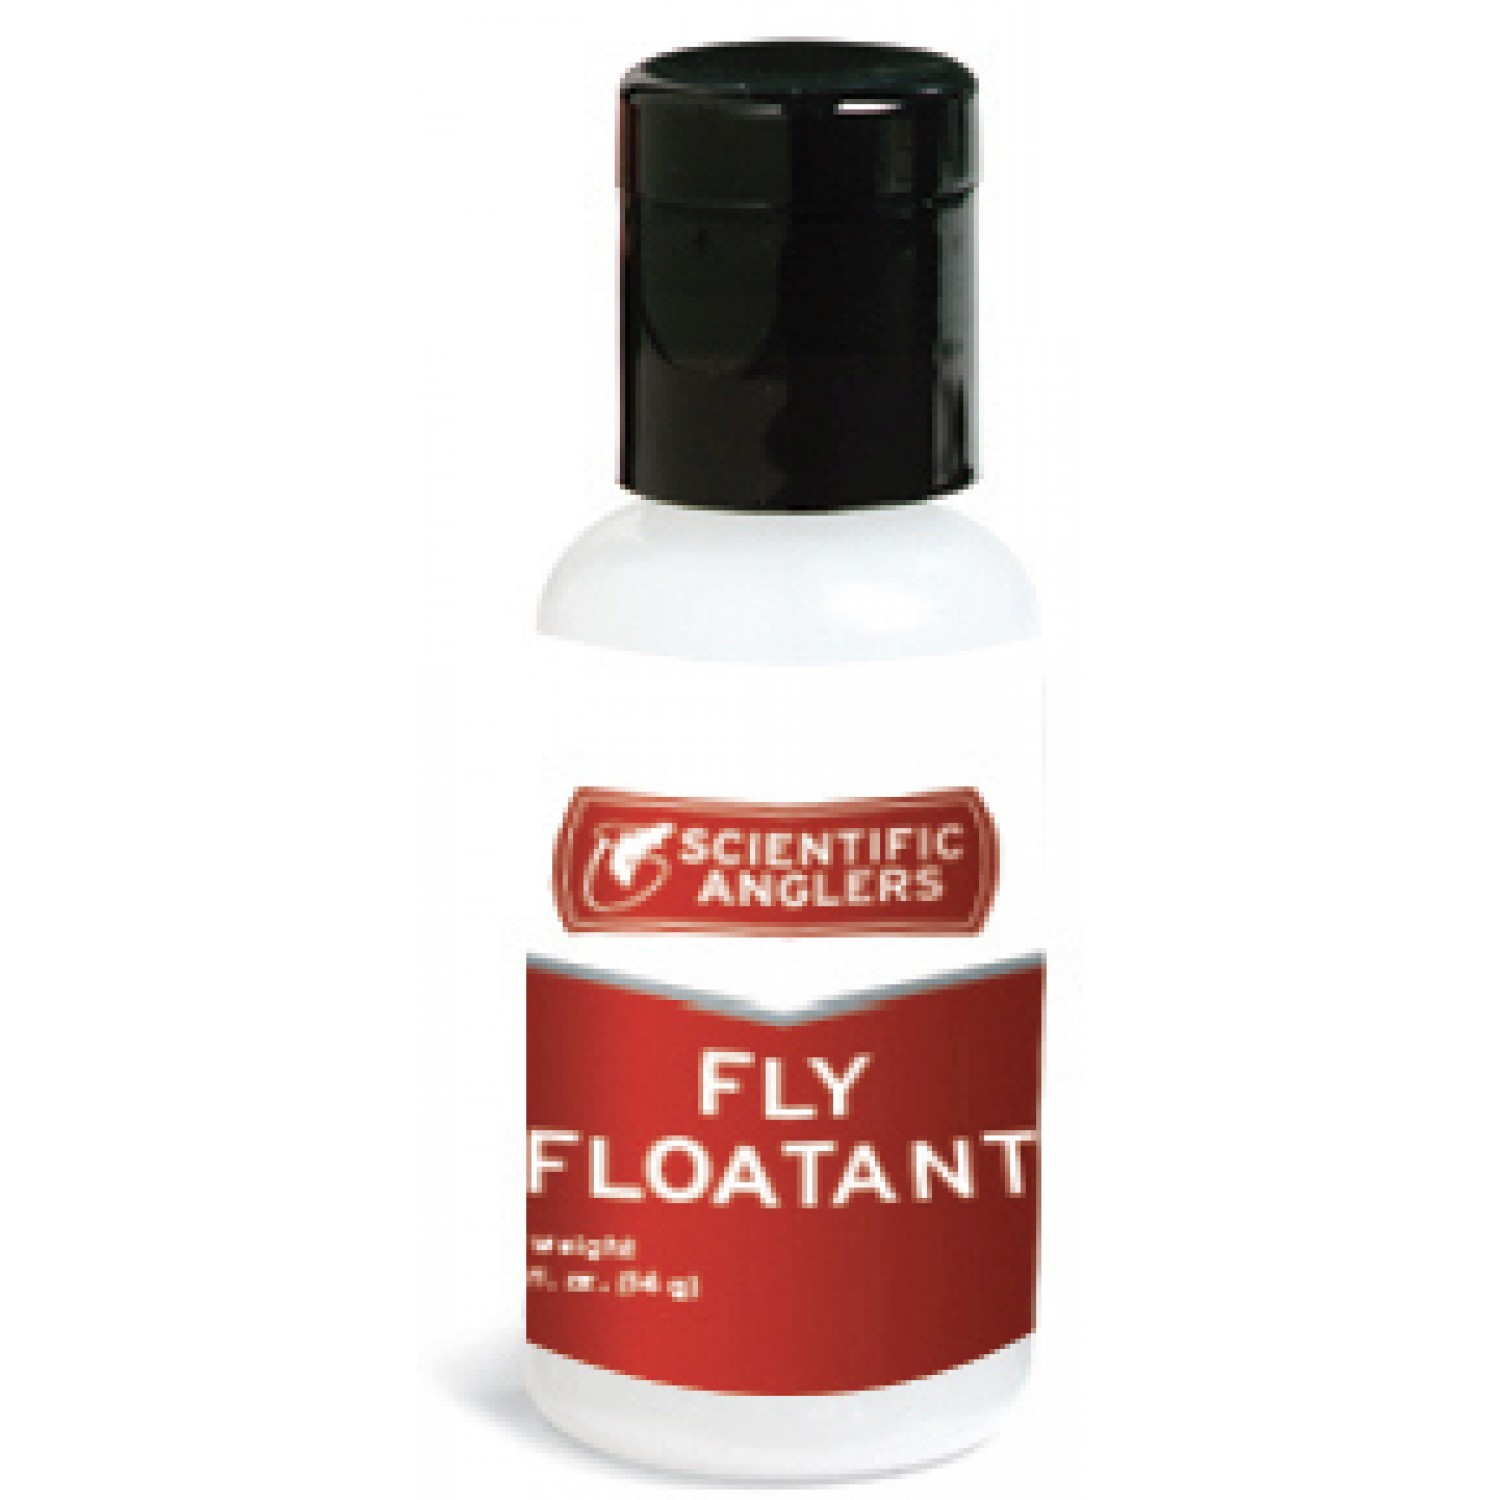 Scientific Anglers - Scientific Anglers - Fly Floatant